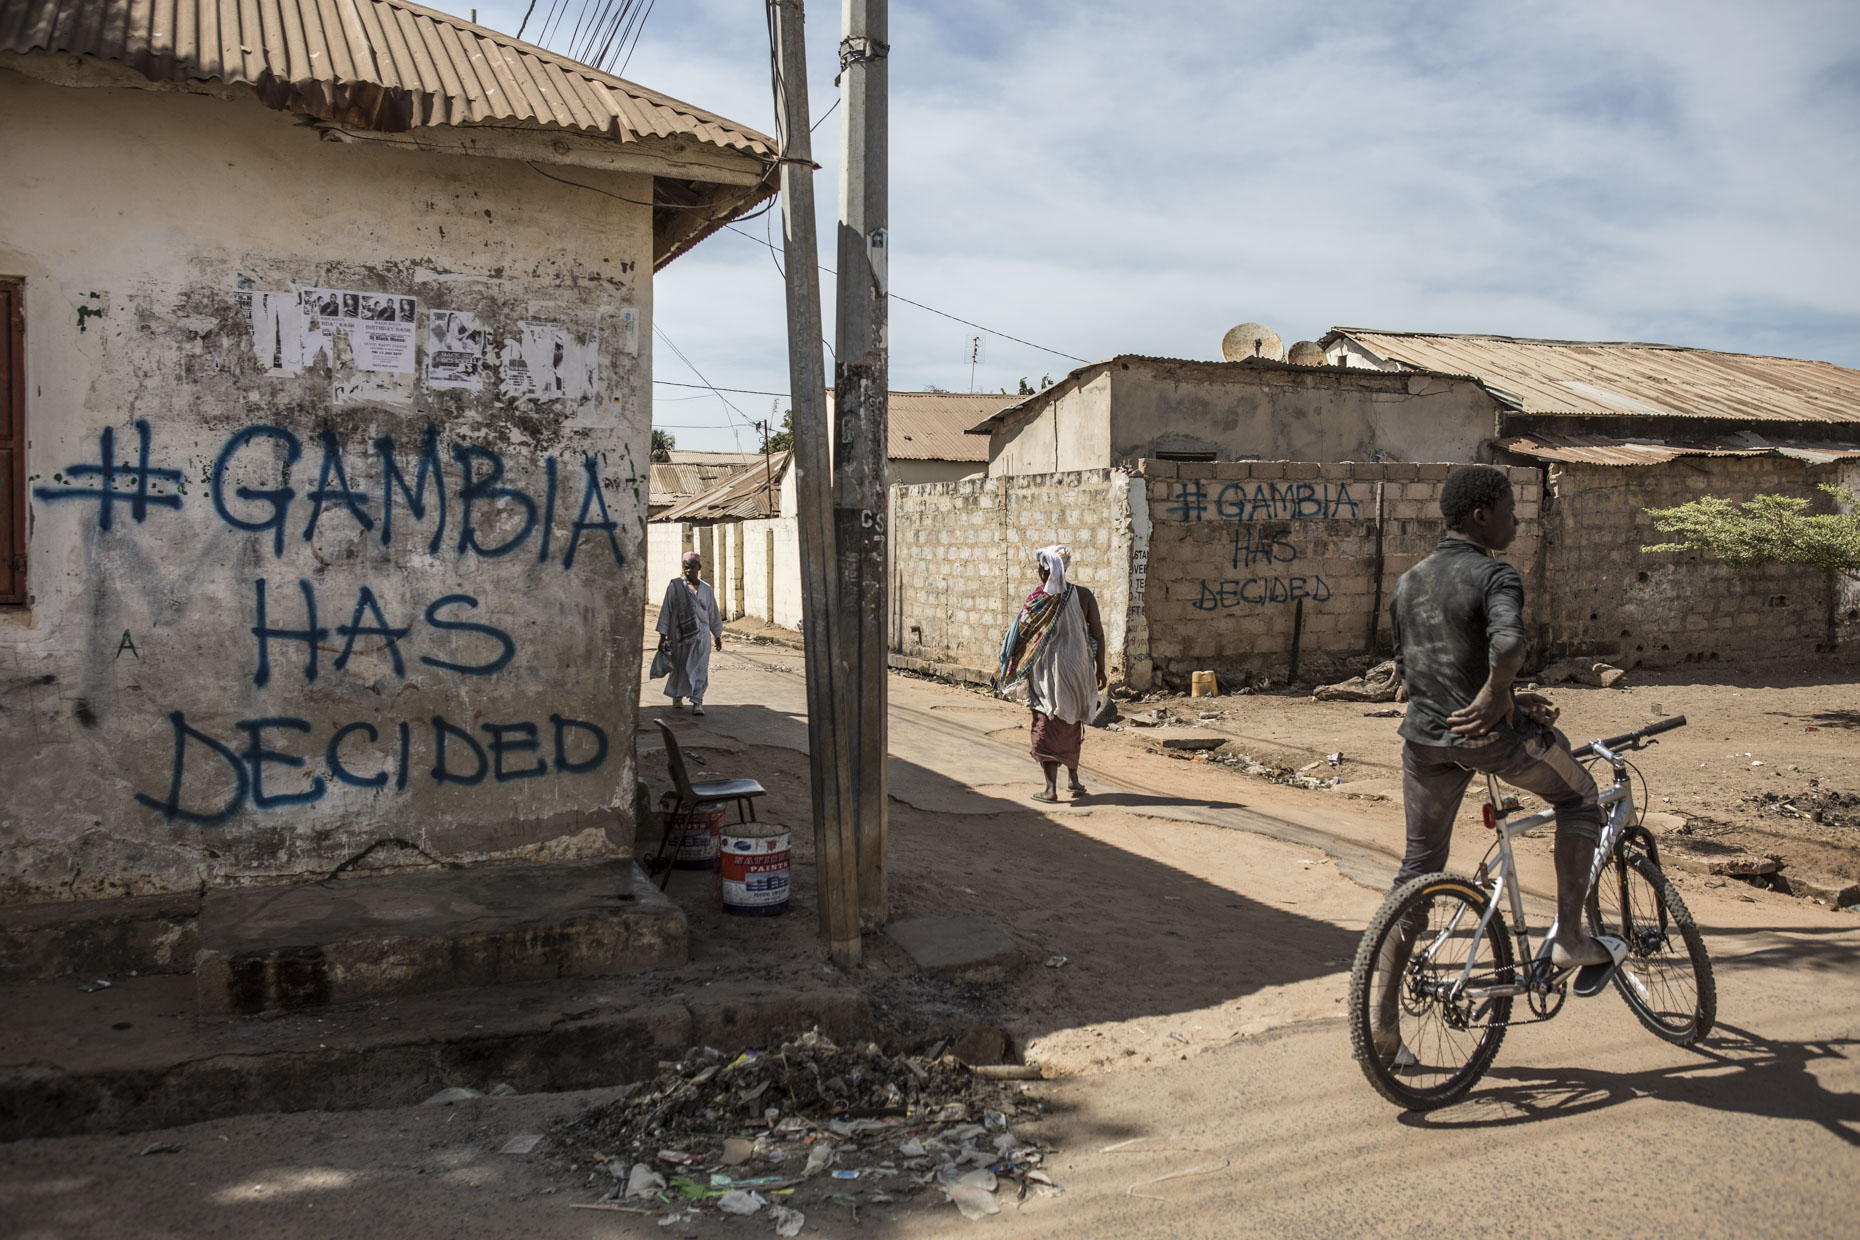 The Gambia Has Decided graffiti